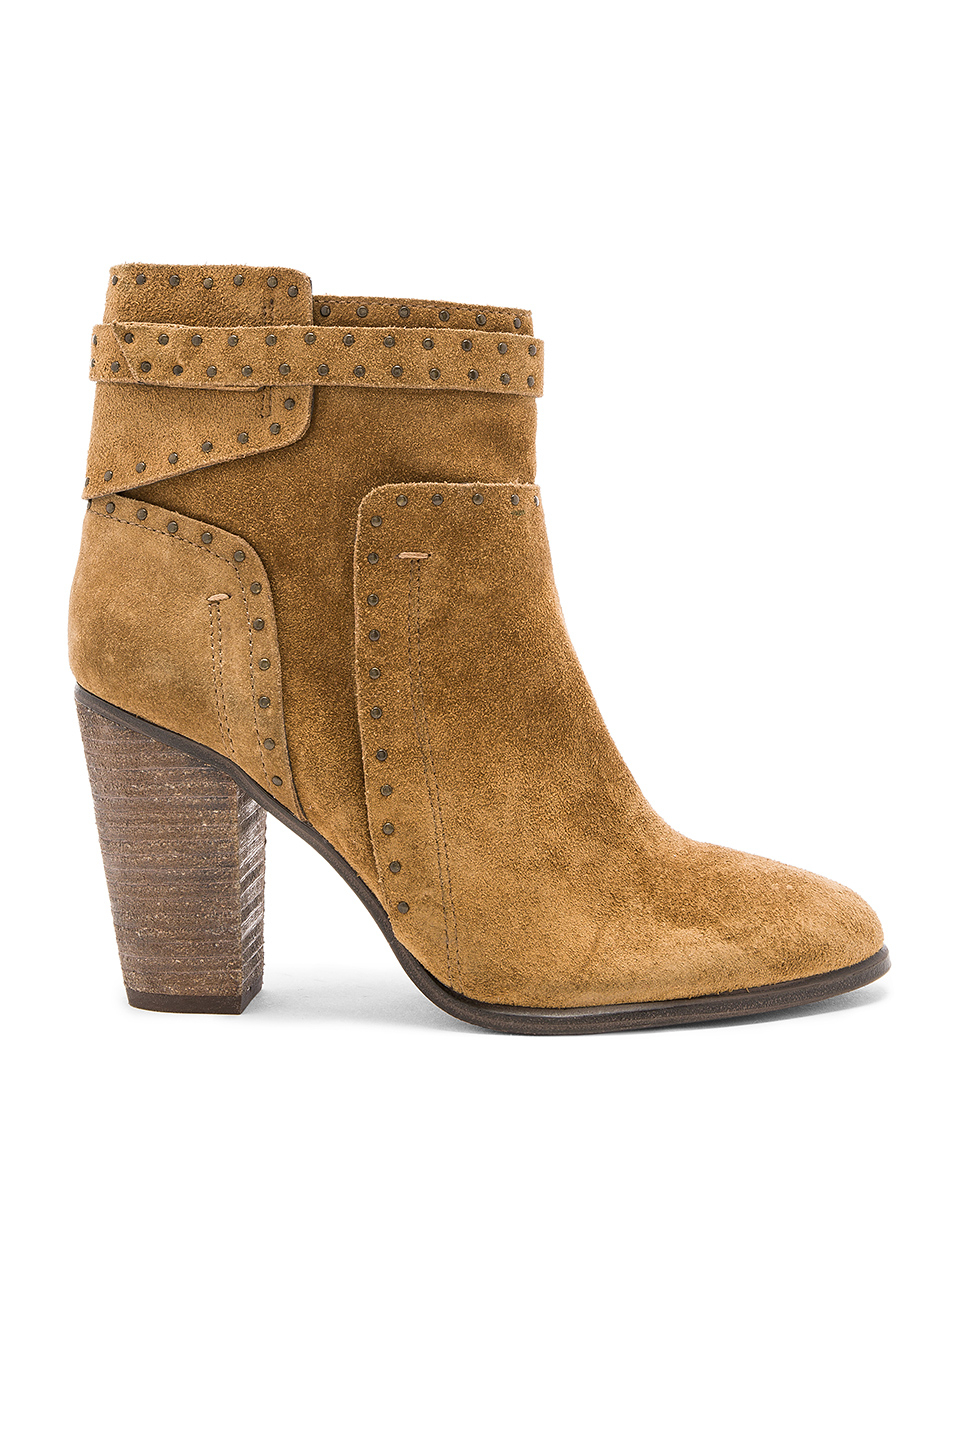 Vince CamutoWomen's Blue Faythes Booties